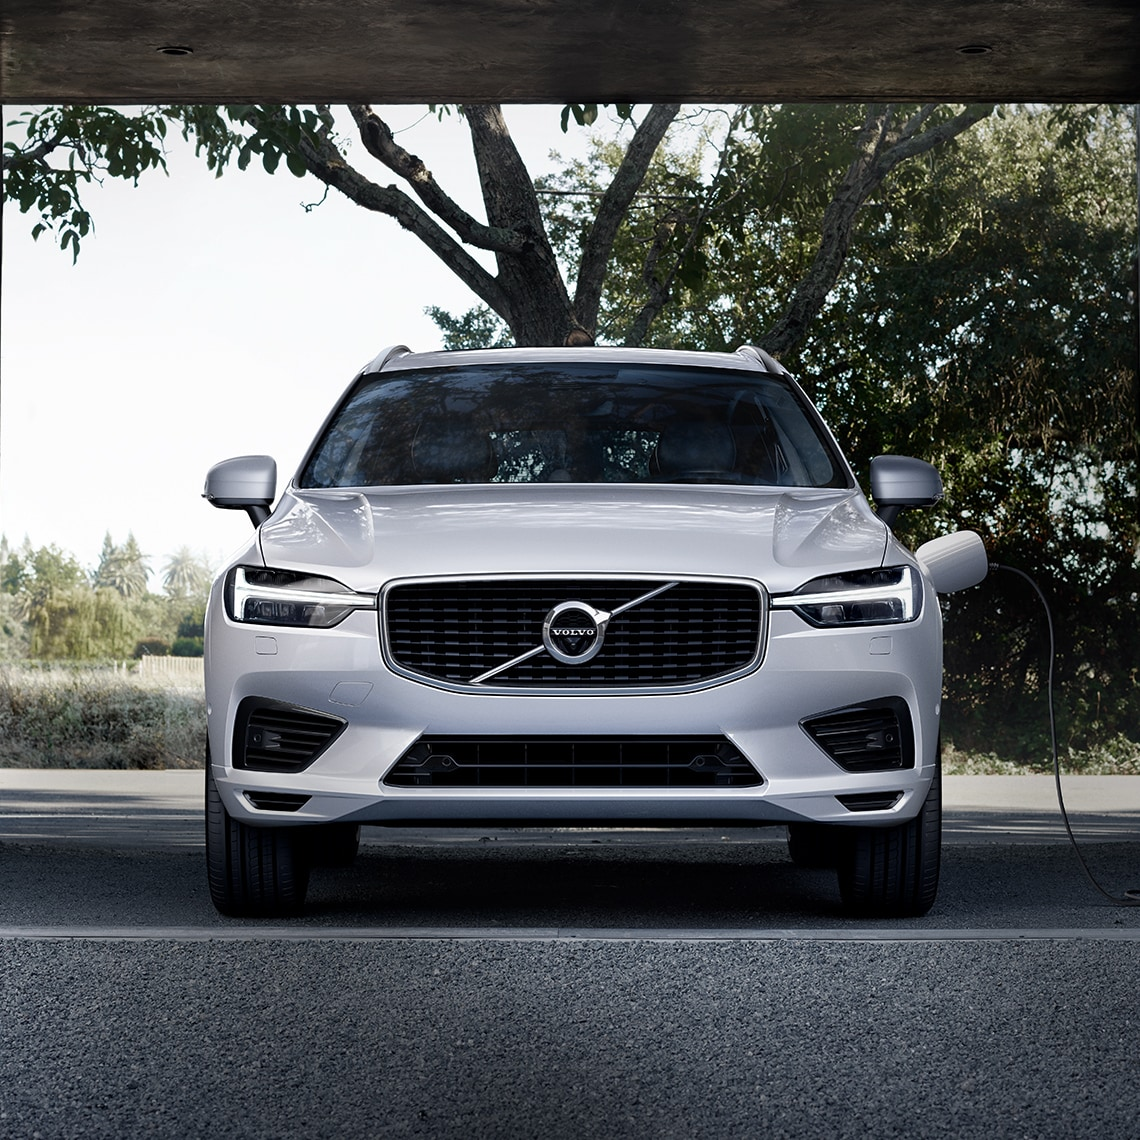 Volvo V90 Ausstattungslinien - TWIN ENGINE - Volvo XC60 am Ladekabel